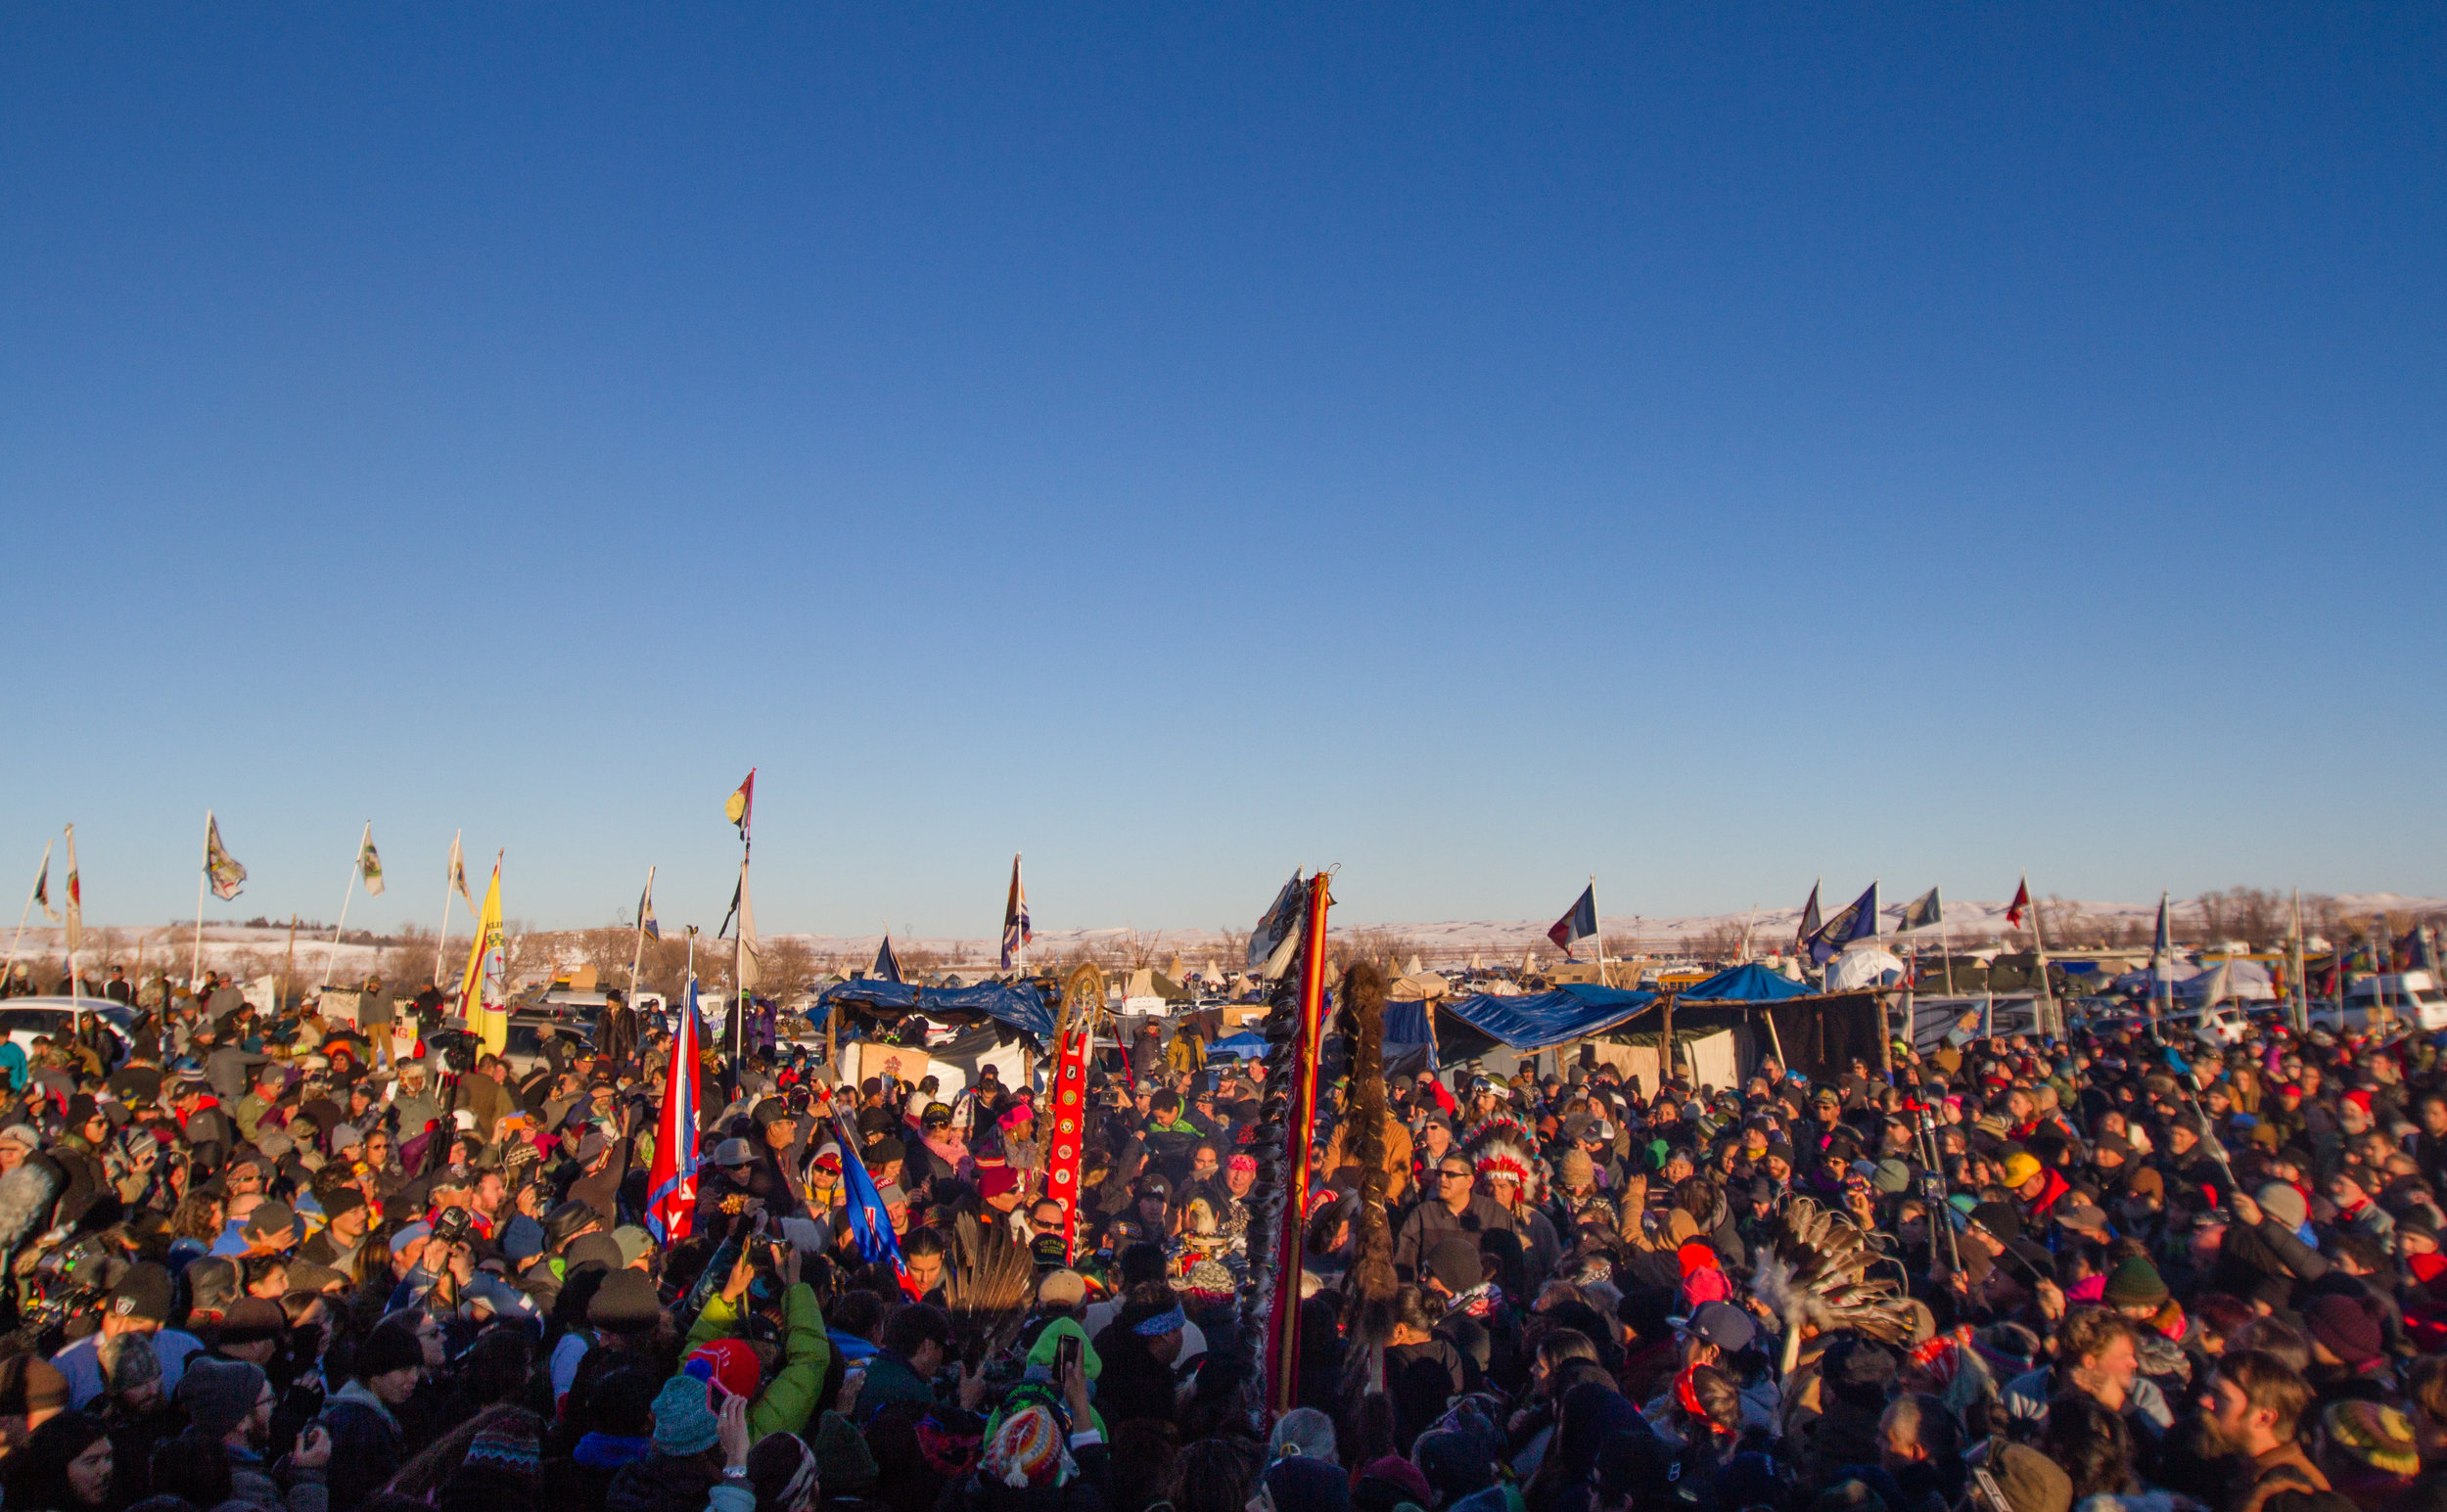 Dakota Access Pipeline protesters pour into the main area of the Oceti Sakowin camp at Standing Rock celebrating the Army Corps of Engineers decision to not grant permission for the Dakota Access Pipeline to cross under the Missouri river on December 4, 2016.